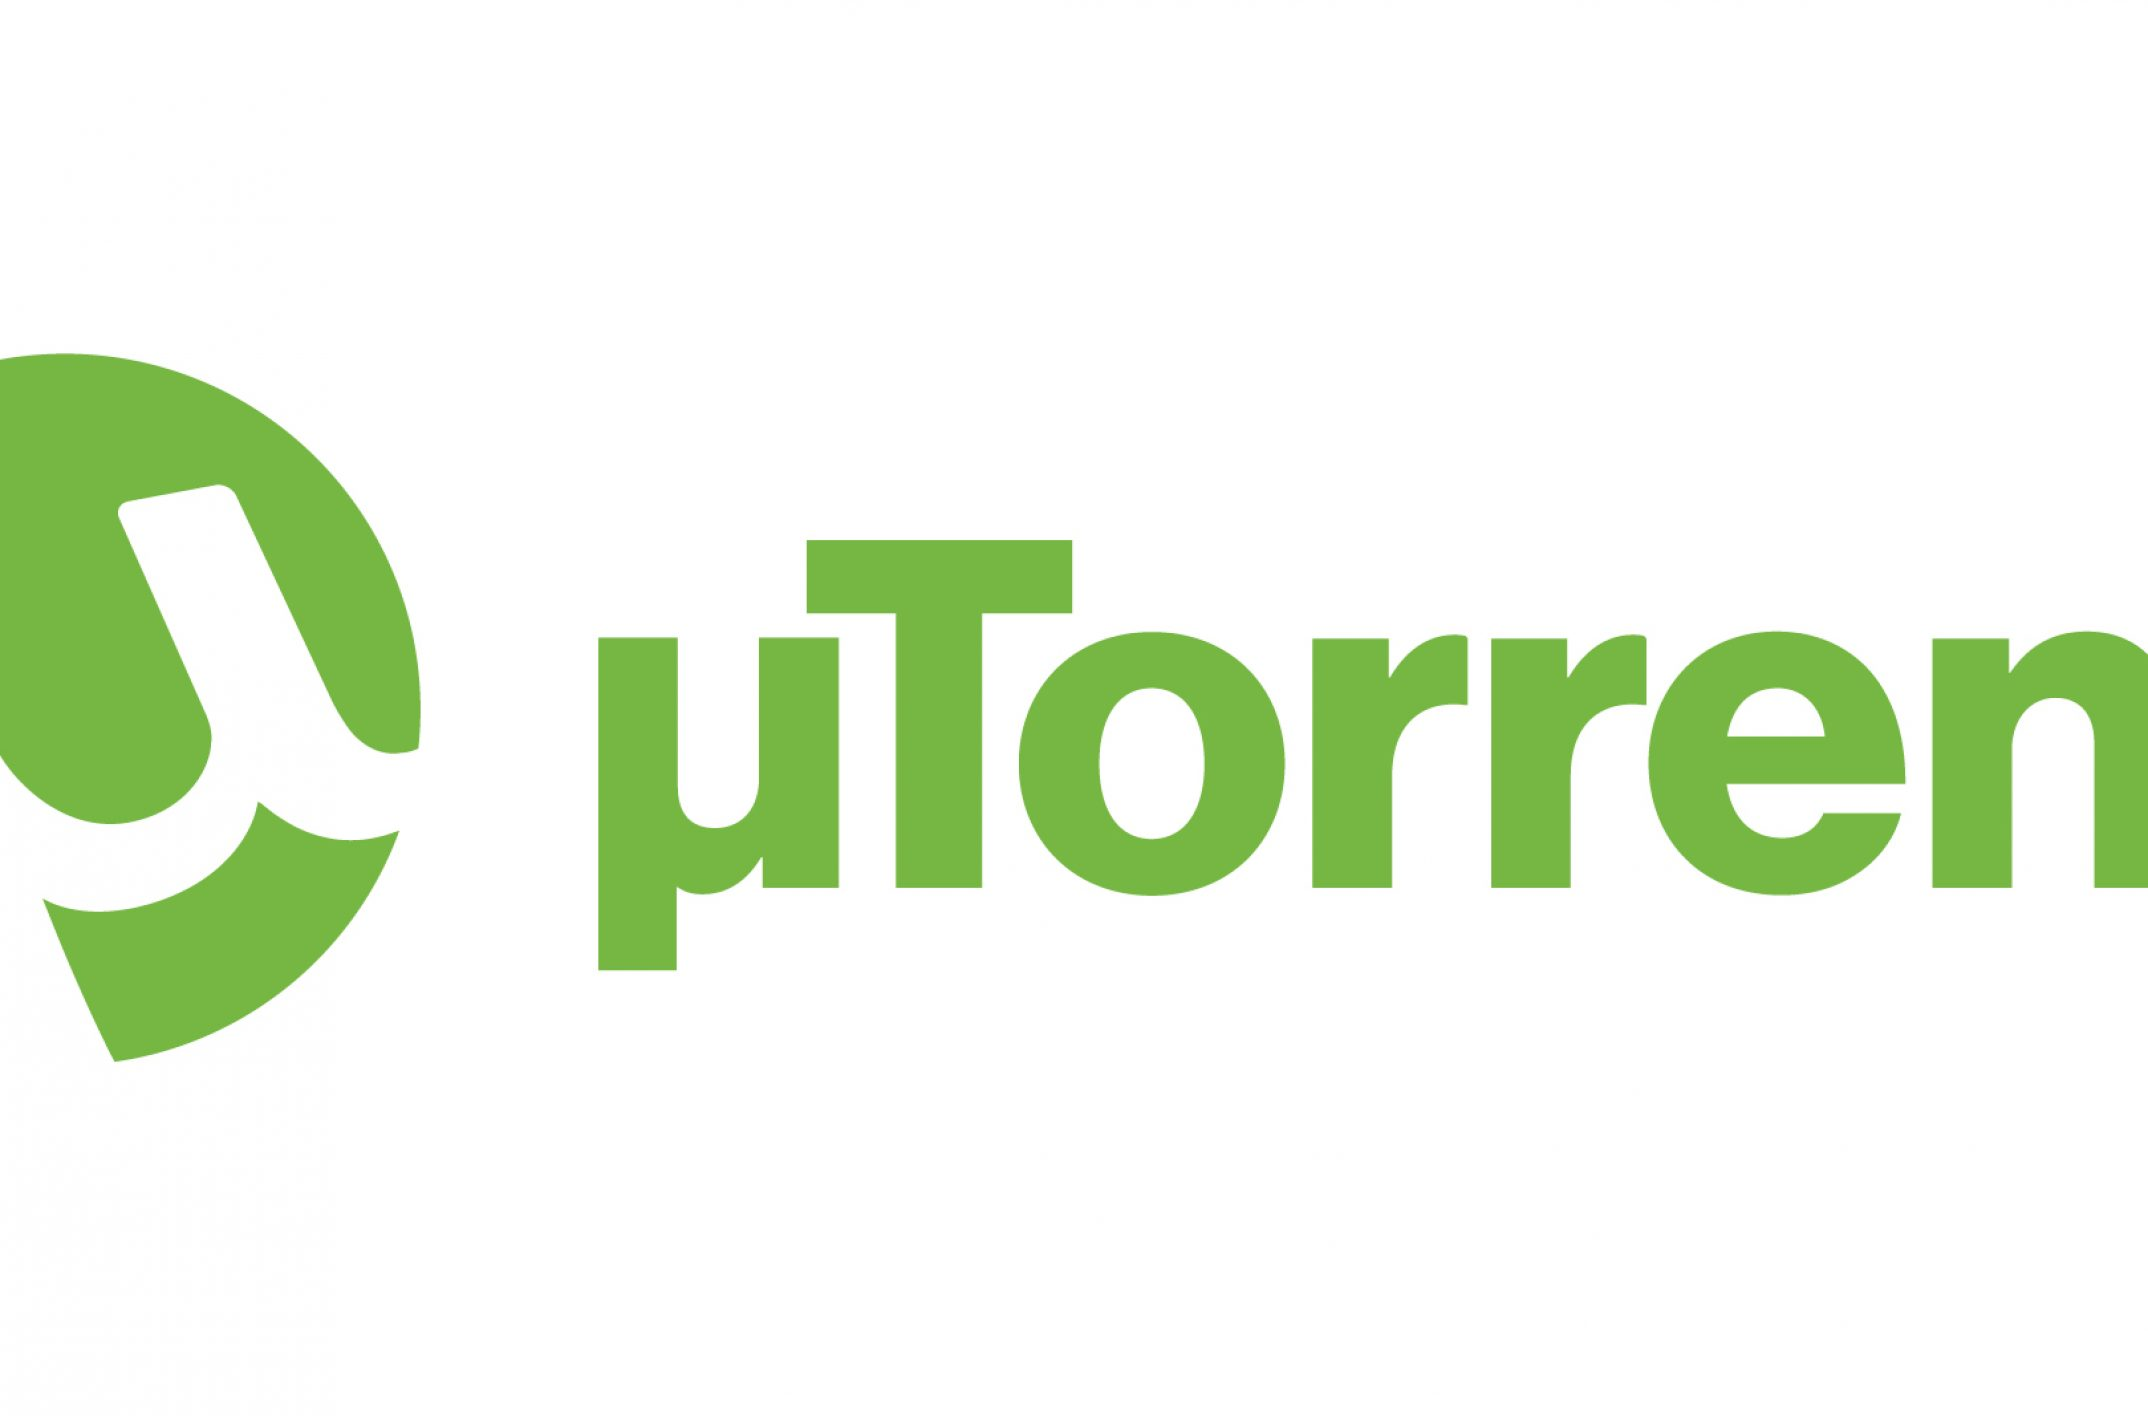 telecharger utorrent